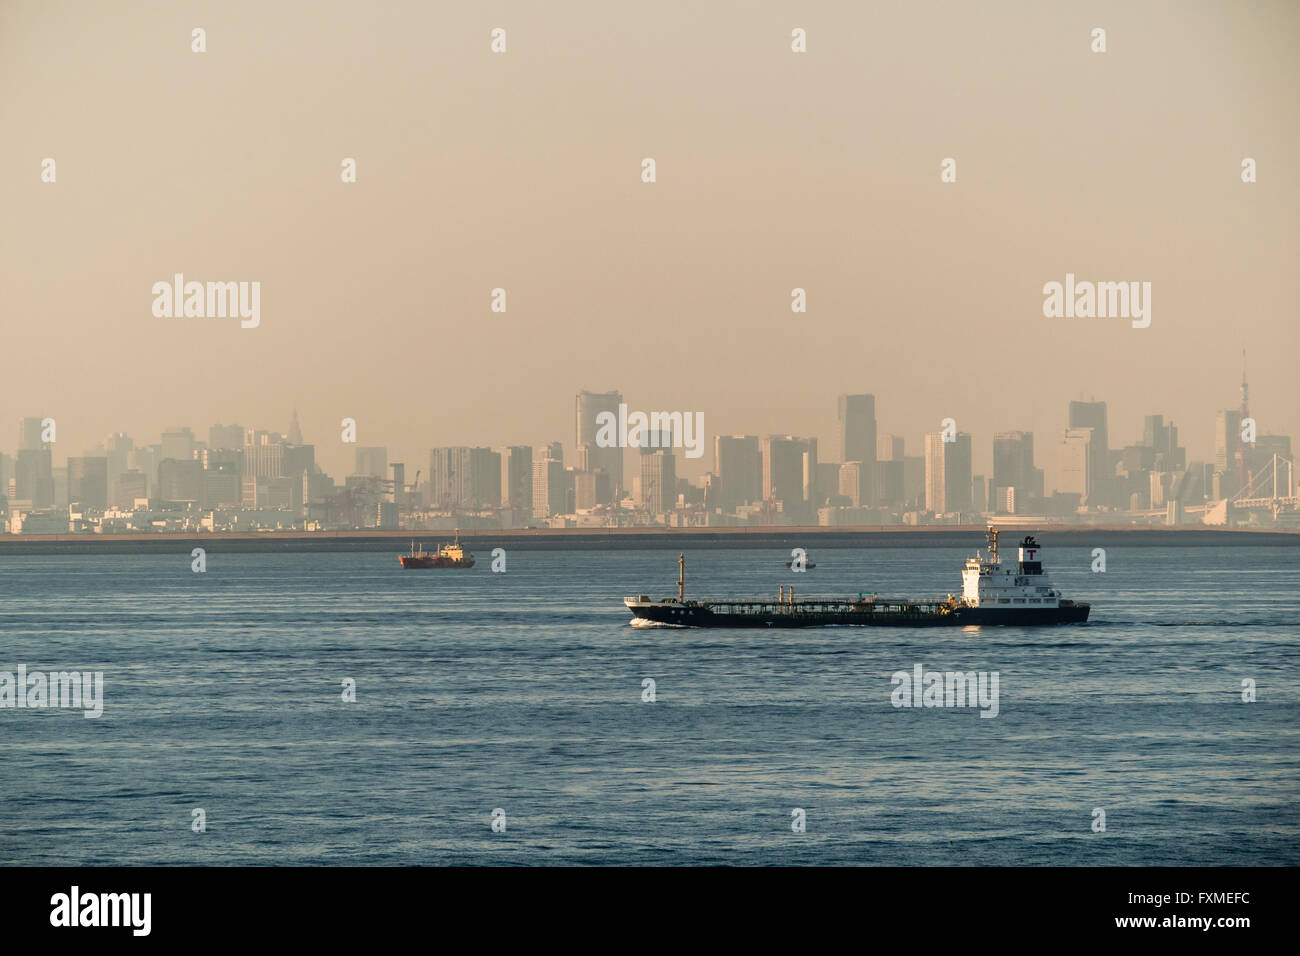 Cargo vessels on Tokyo Bay - Stock Image